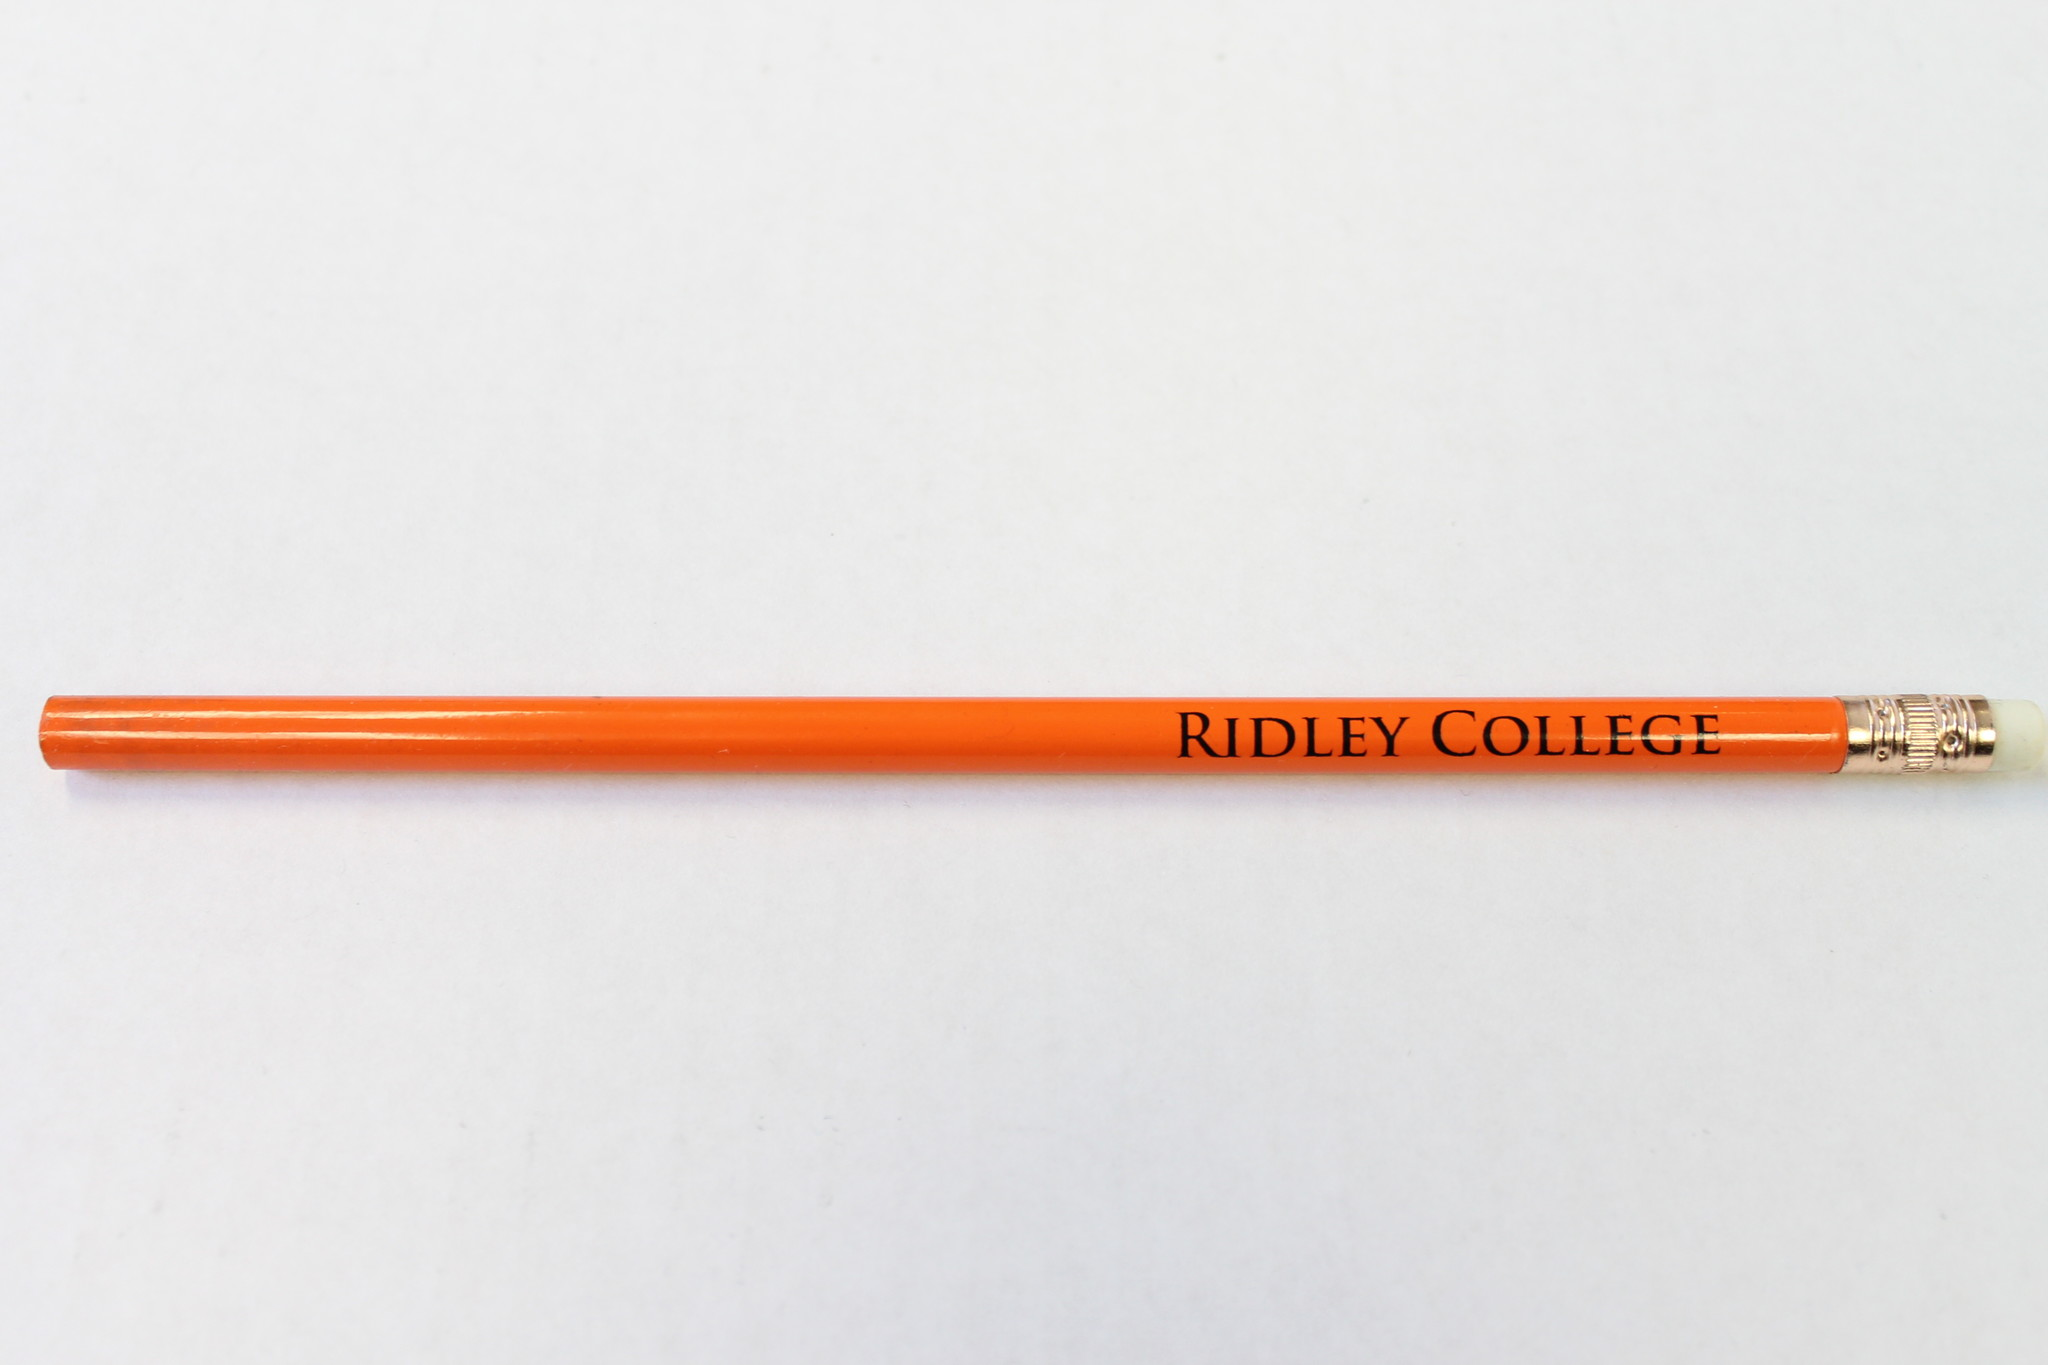 Ridley College Pencil